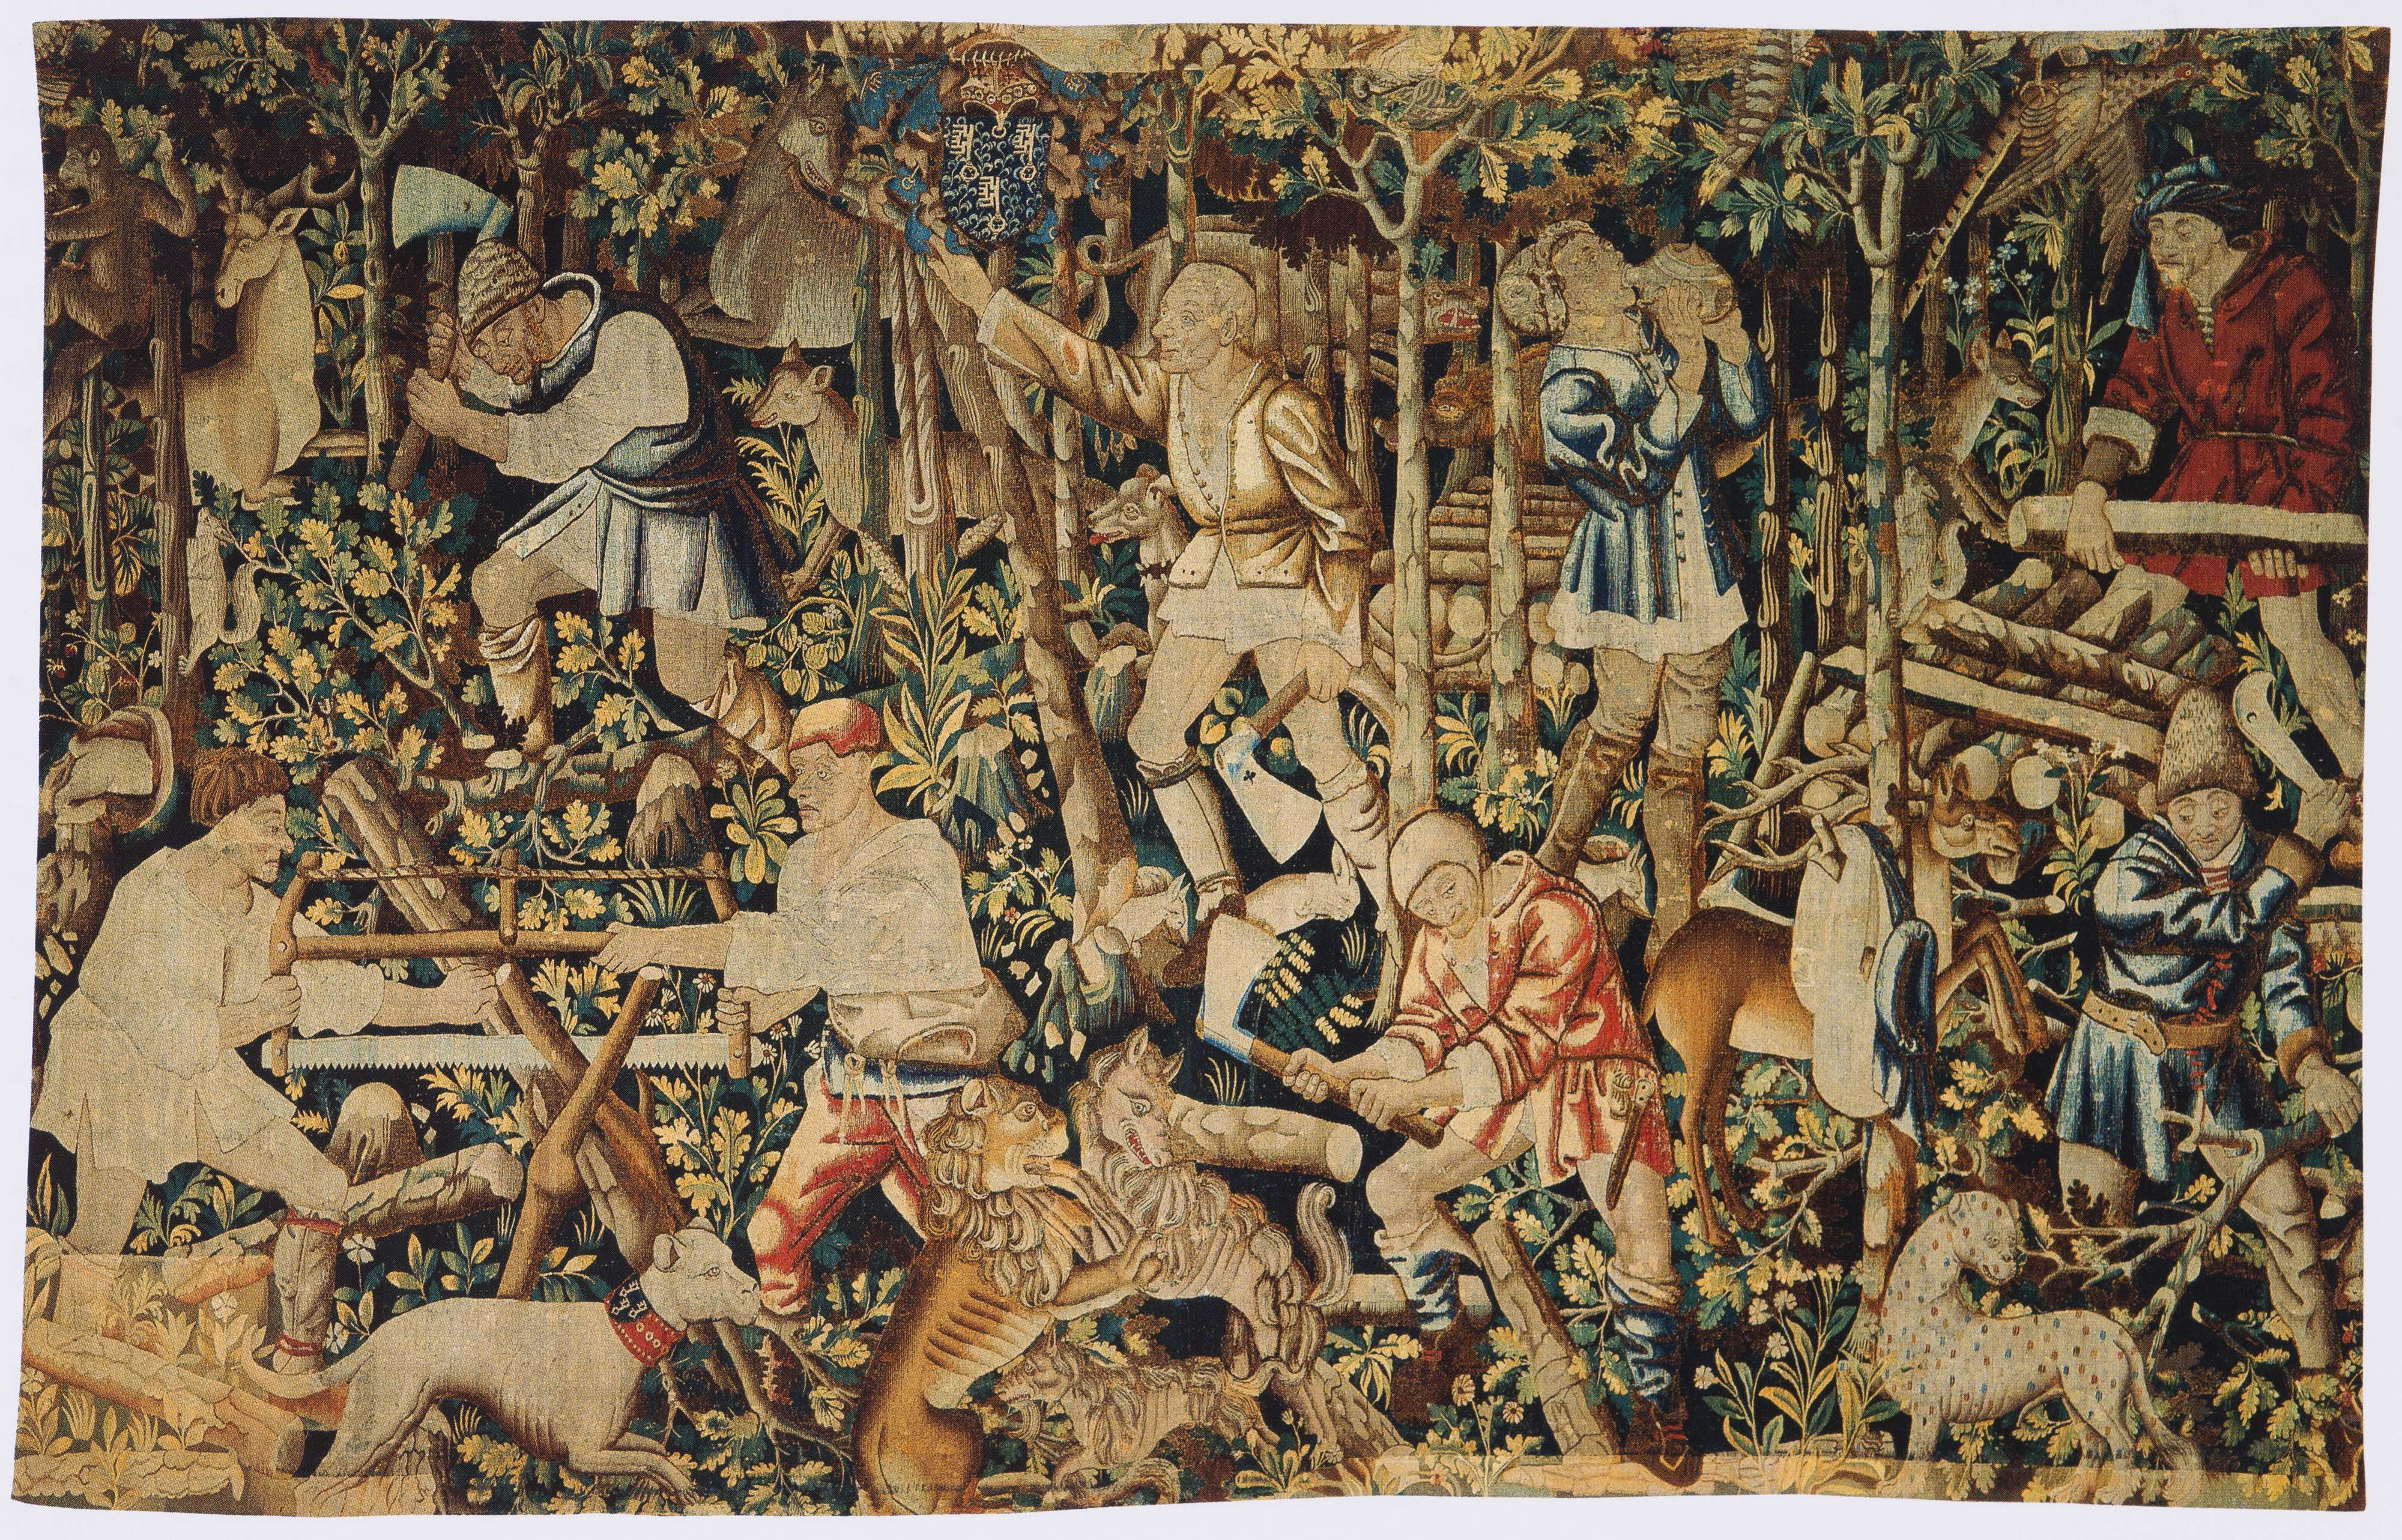 Woodcutters with Arms of Nicolas Rolin, Tapestry (Fragment), Tournai (?), before 1462, Wool and Silk, 315x495 cm, Paris, Musée des Arts Décoratifs